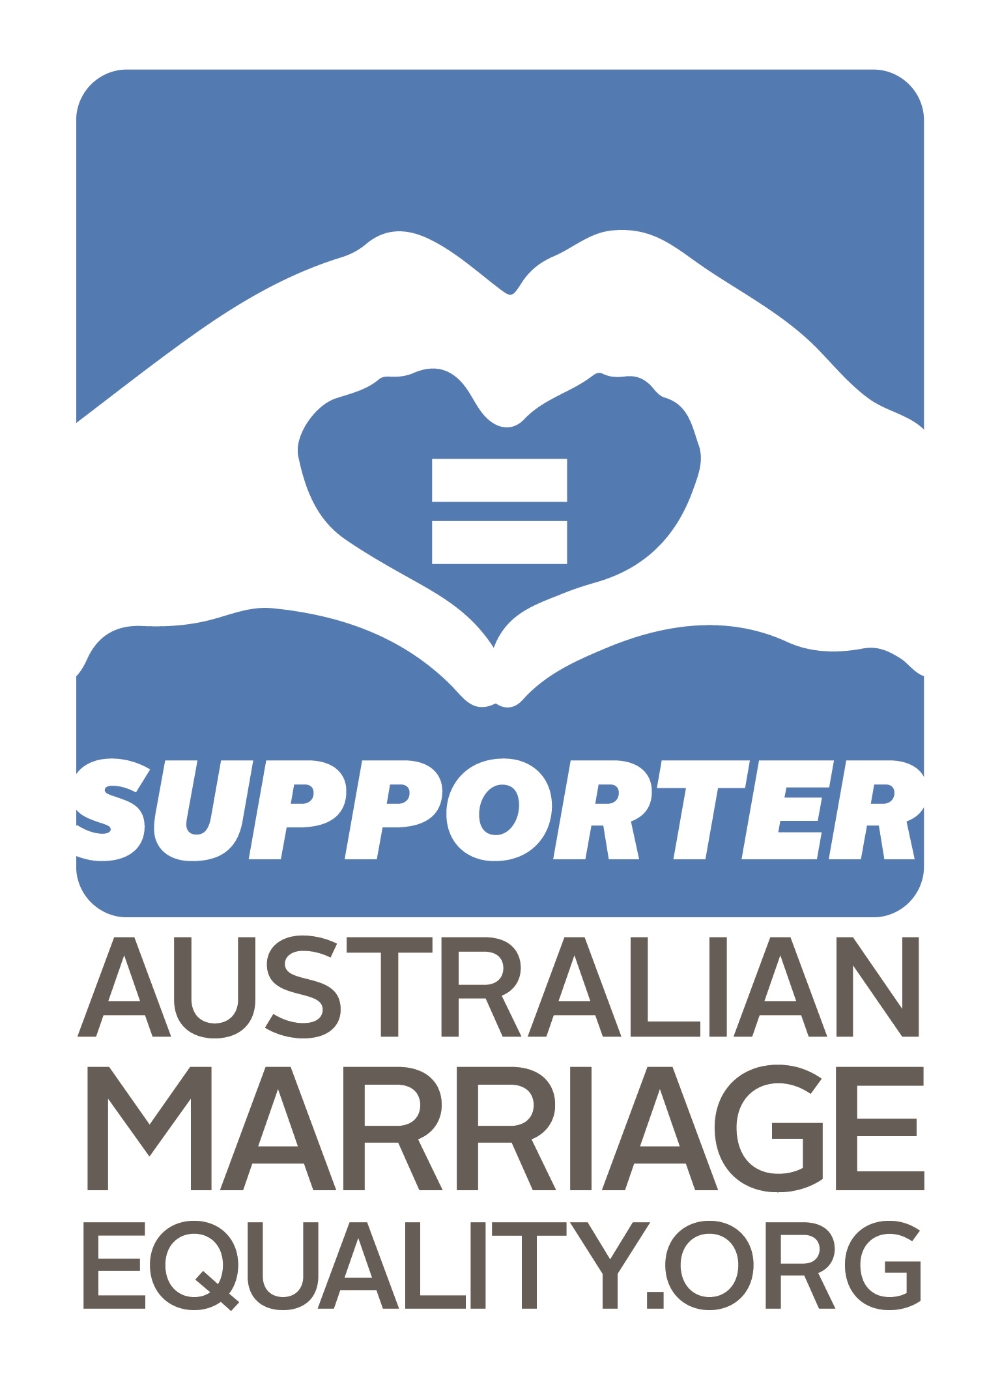 Supporter Australian marriage equality